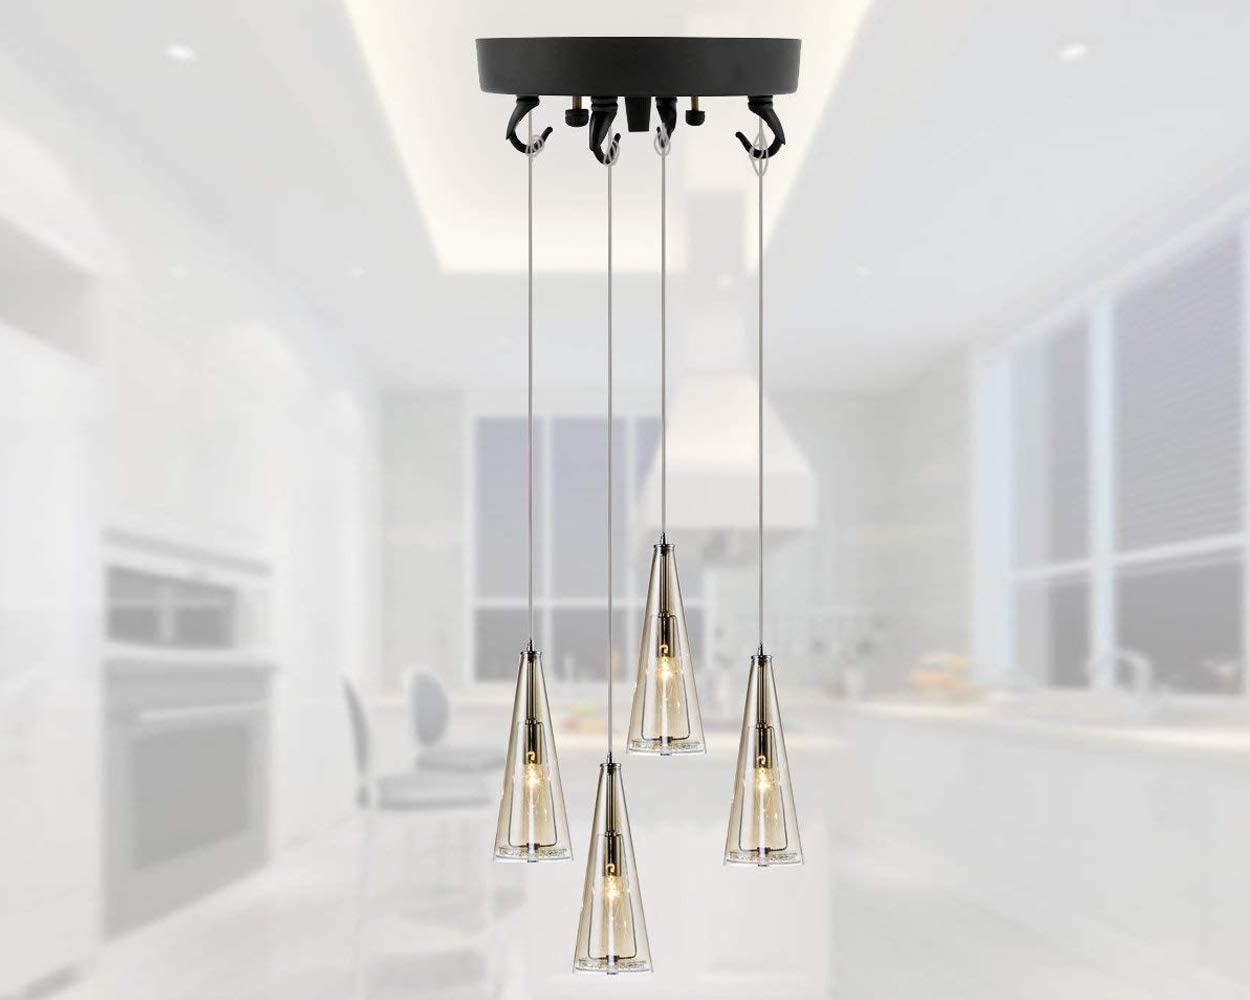 Hook plate accessories for Lighting Ceiling Chandelier Quick